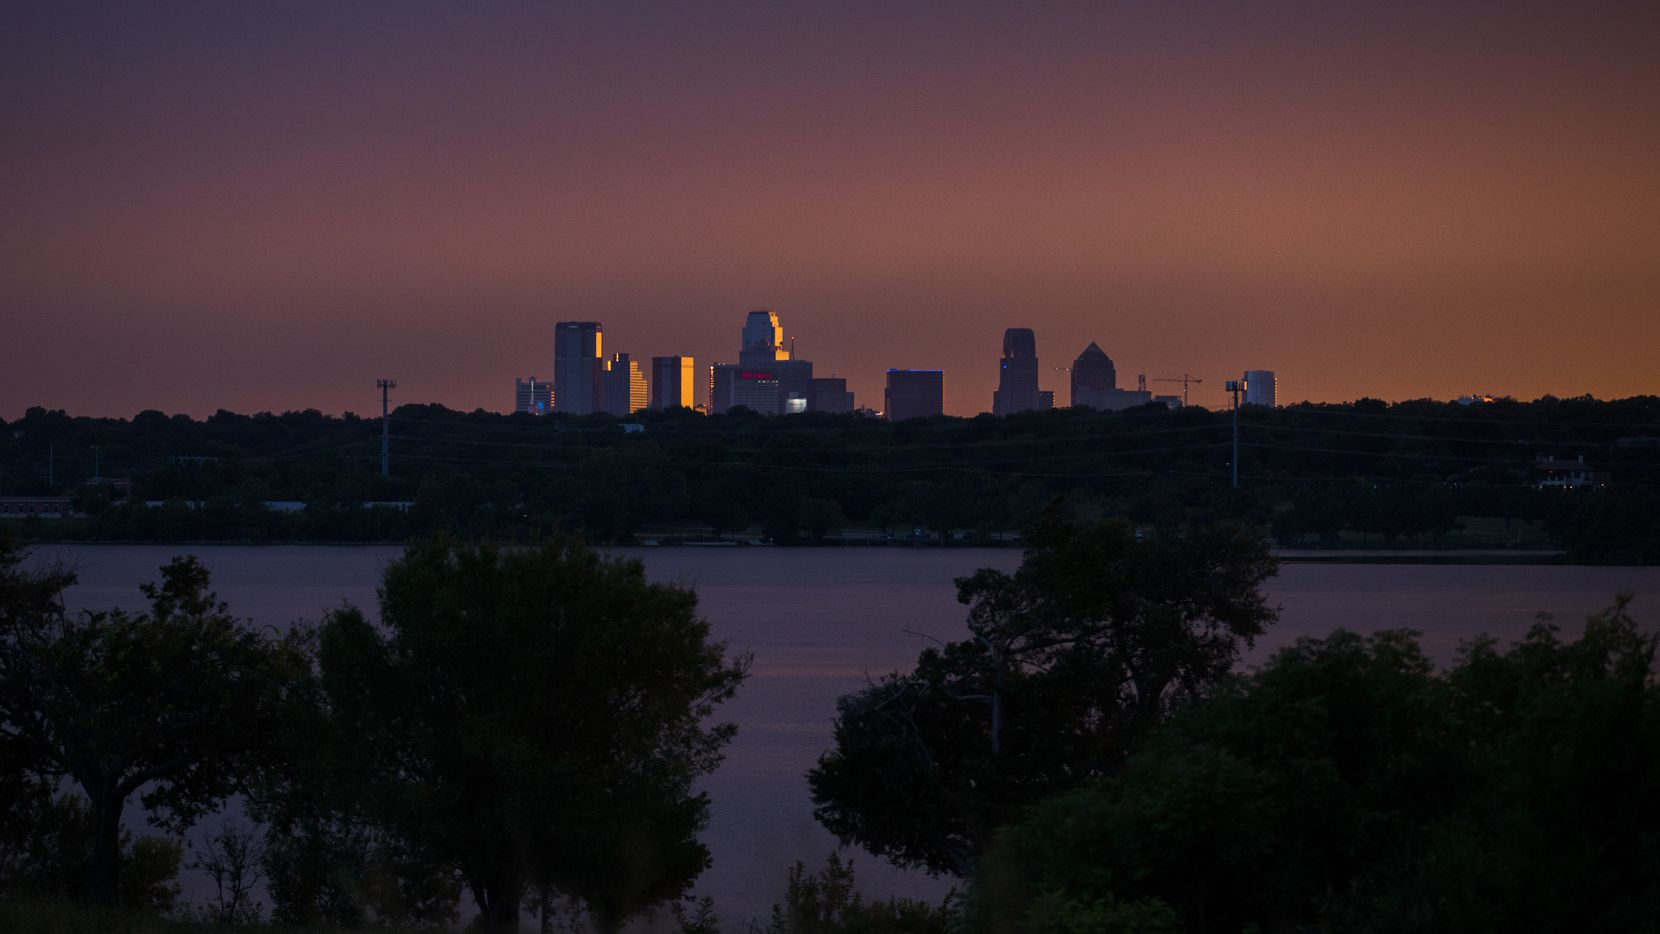 In Dallas and elsewhere in North Texas, the average high temperatures in July generally are in the mid-90s with lows in the mid-70s, according to the National Weather Service.